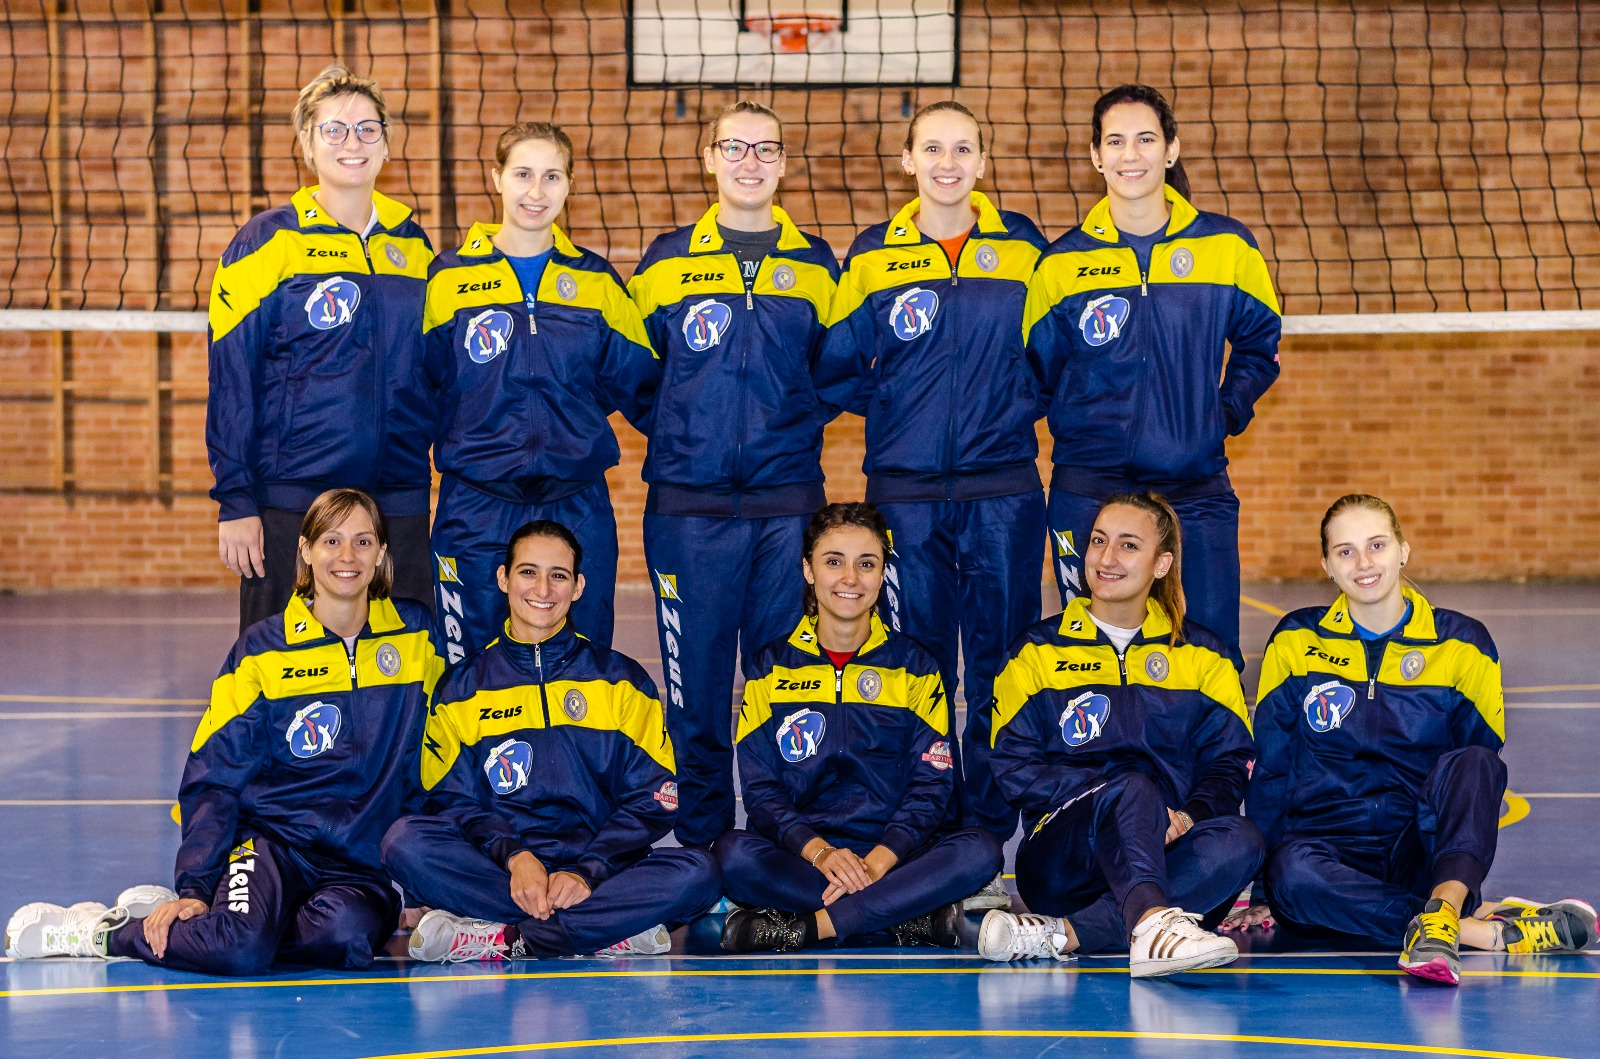 CERES VOLLEY c'è! E' nata la squadra di volley femminile di Ceresole